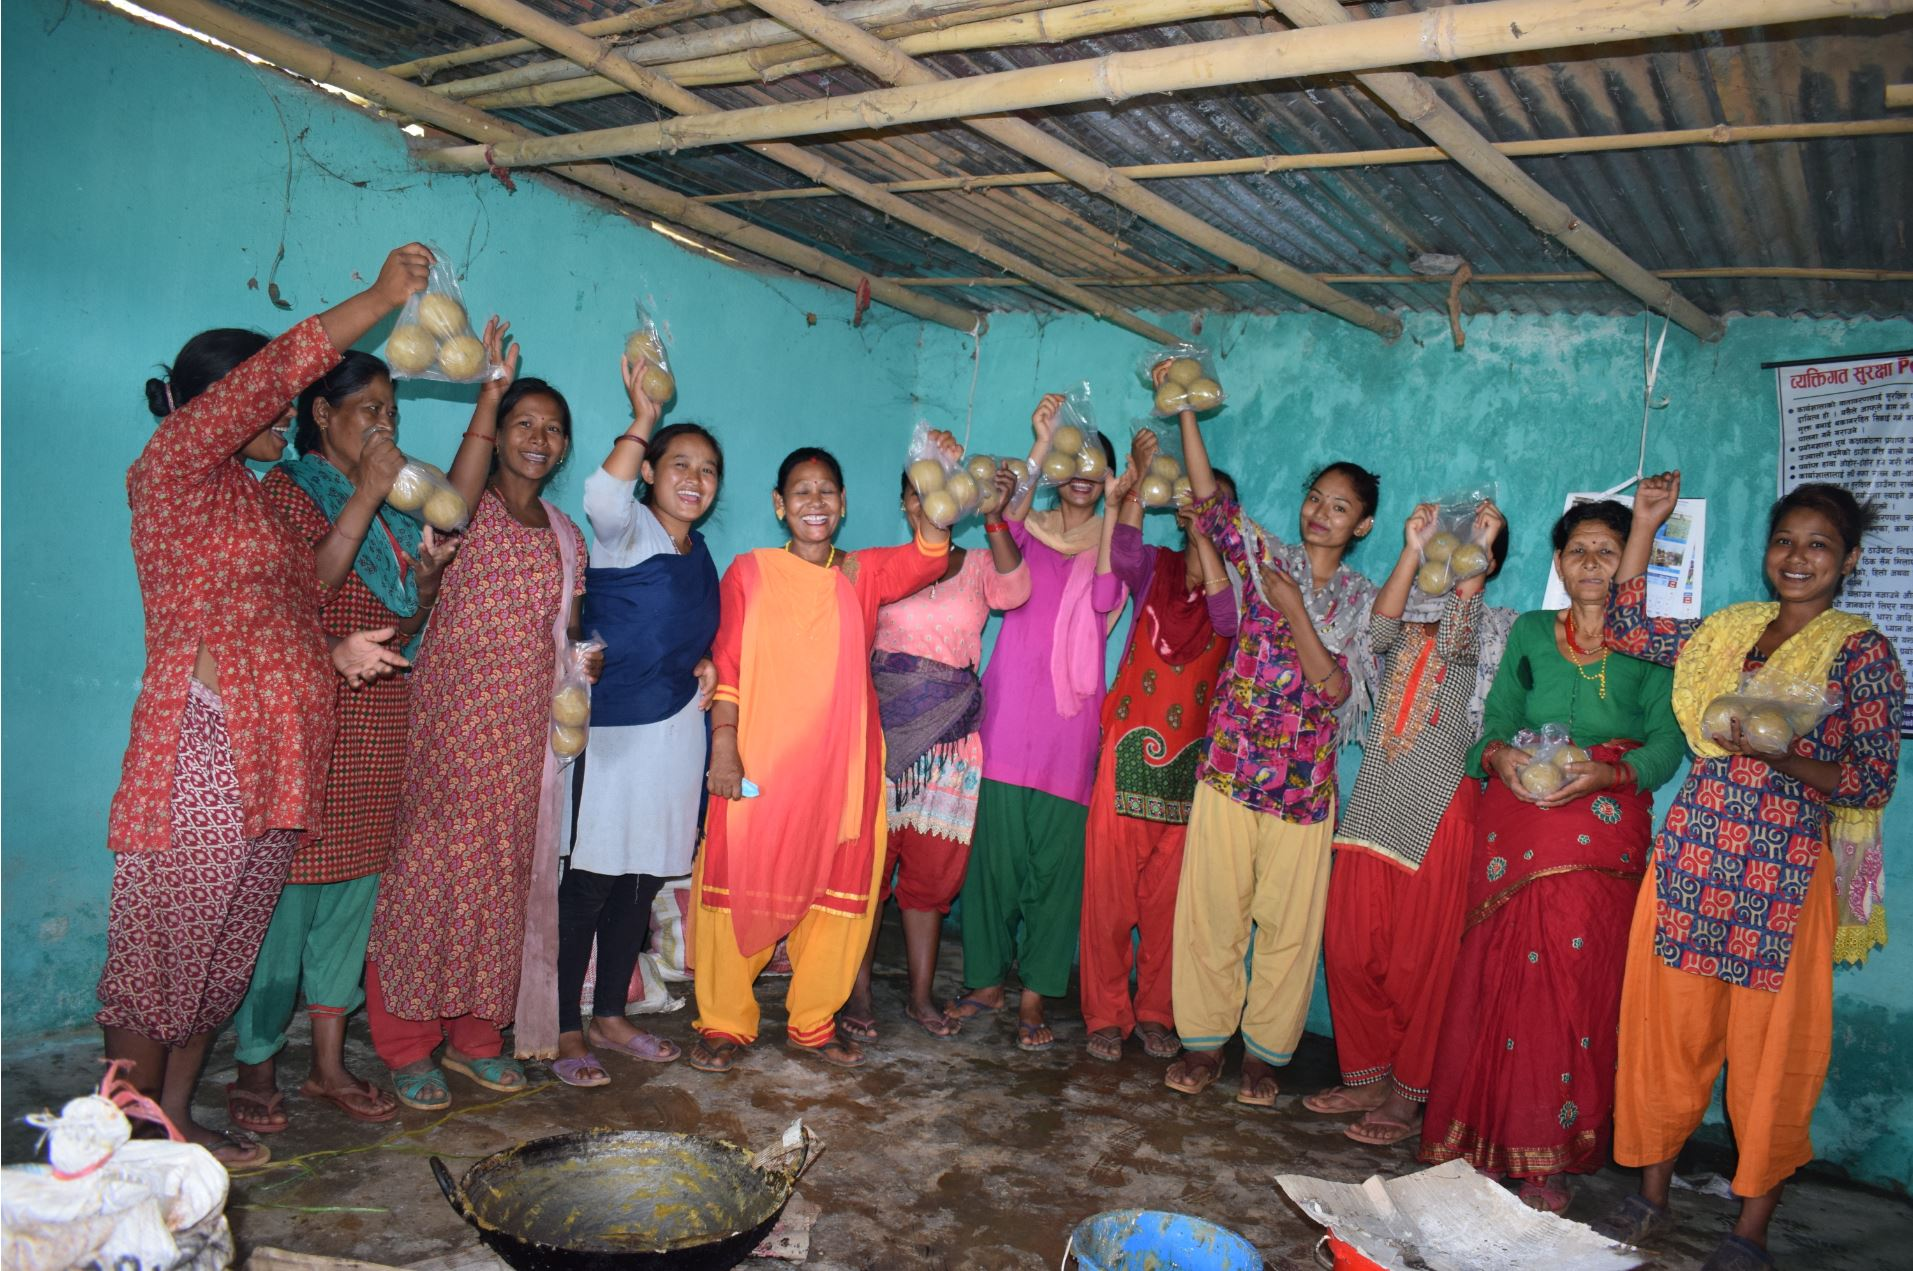 Soap Making project In Kavre: When women connect, women become stronger – Nepal